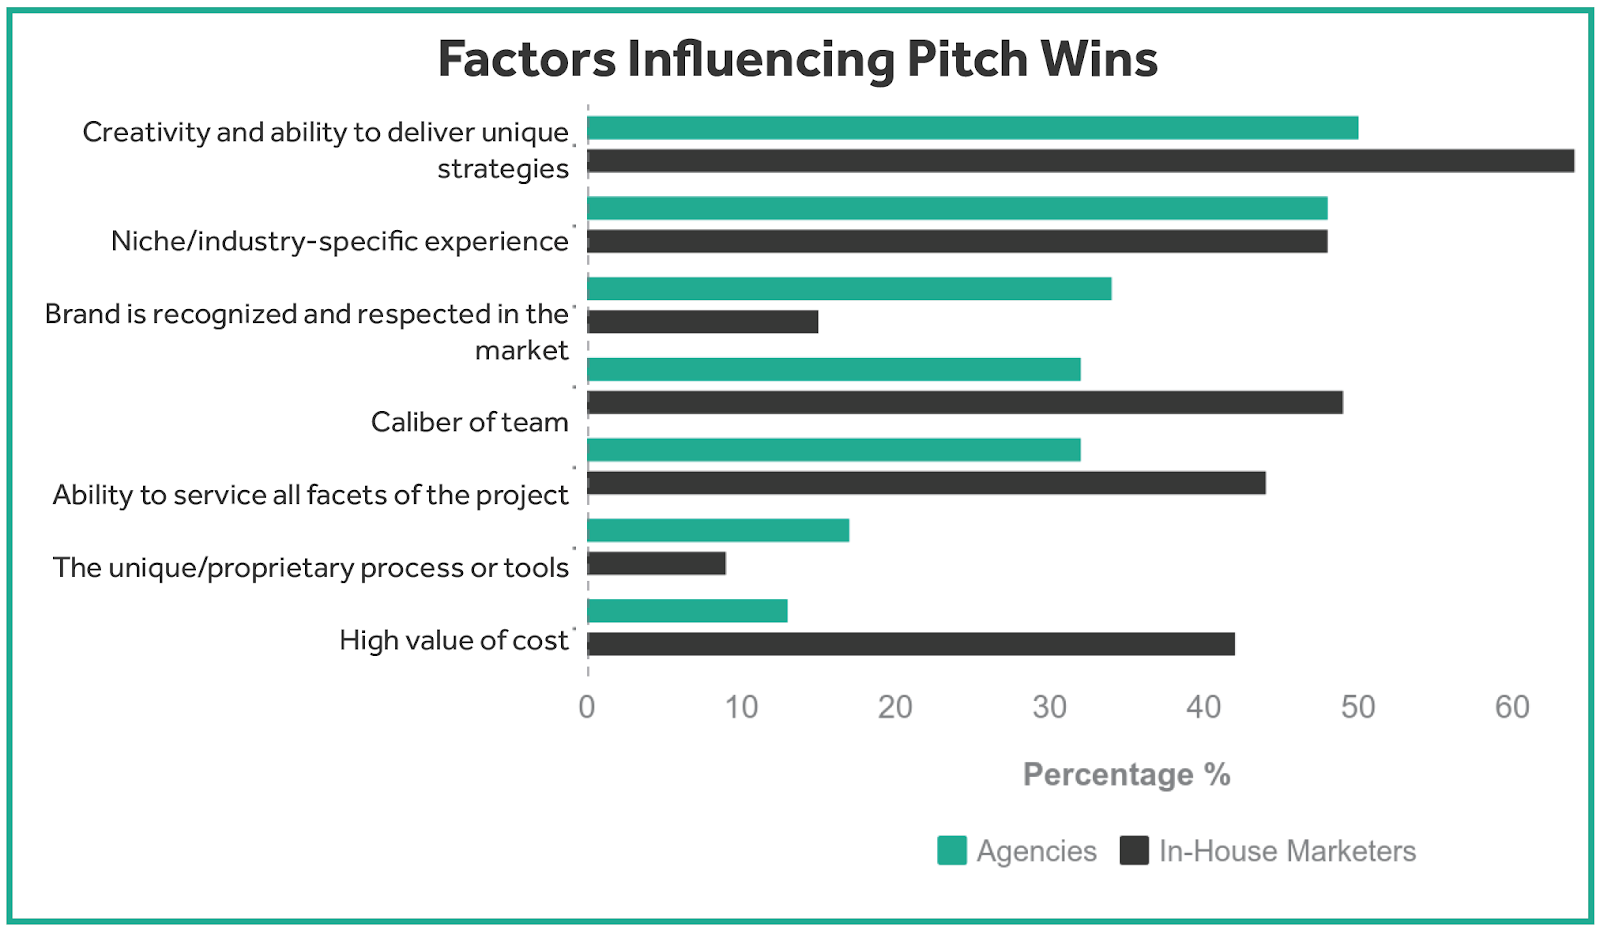 Of The Many Types Of Pitches That The Marketing Professionals See Creative And Unique Pitches Are Often The Most Successful For Client Acquisition